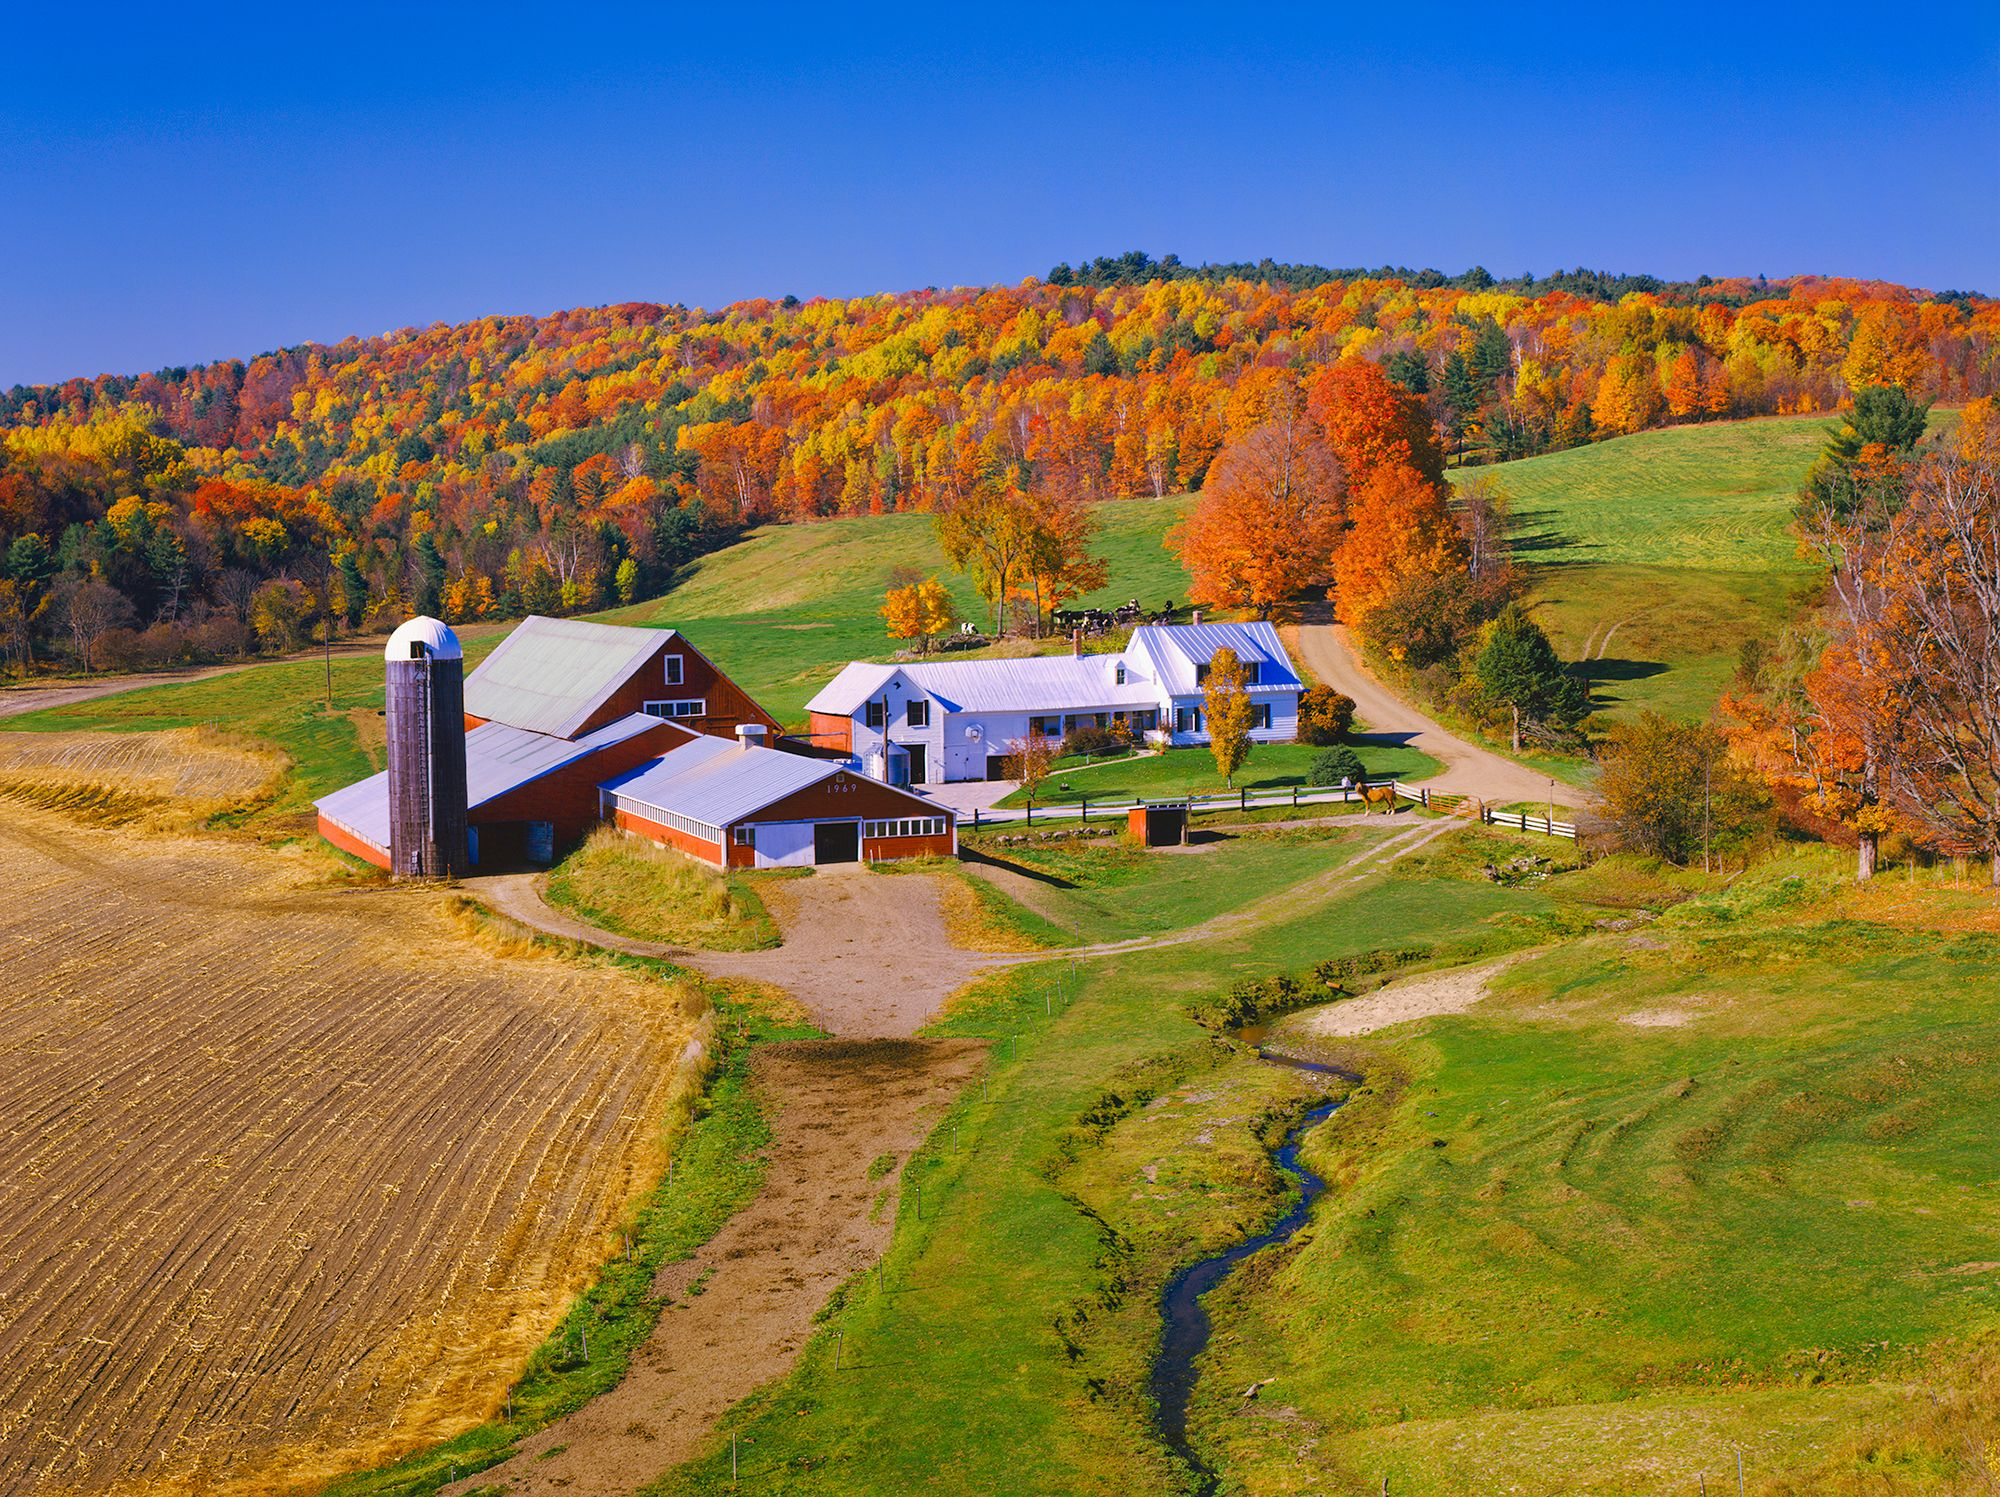 fall pictures - vermont countryside